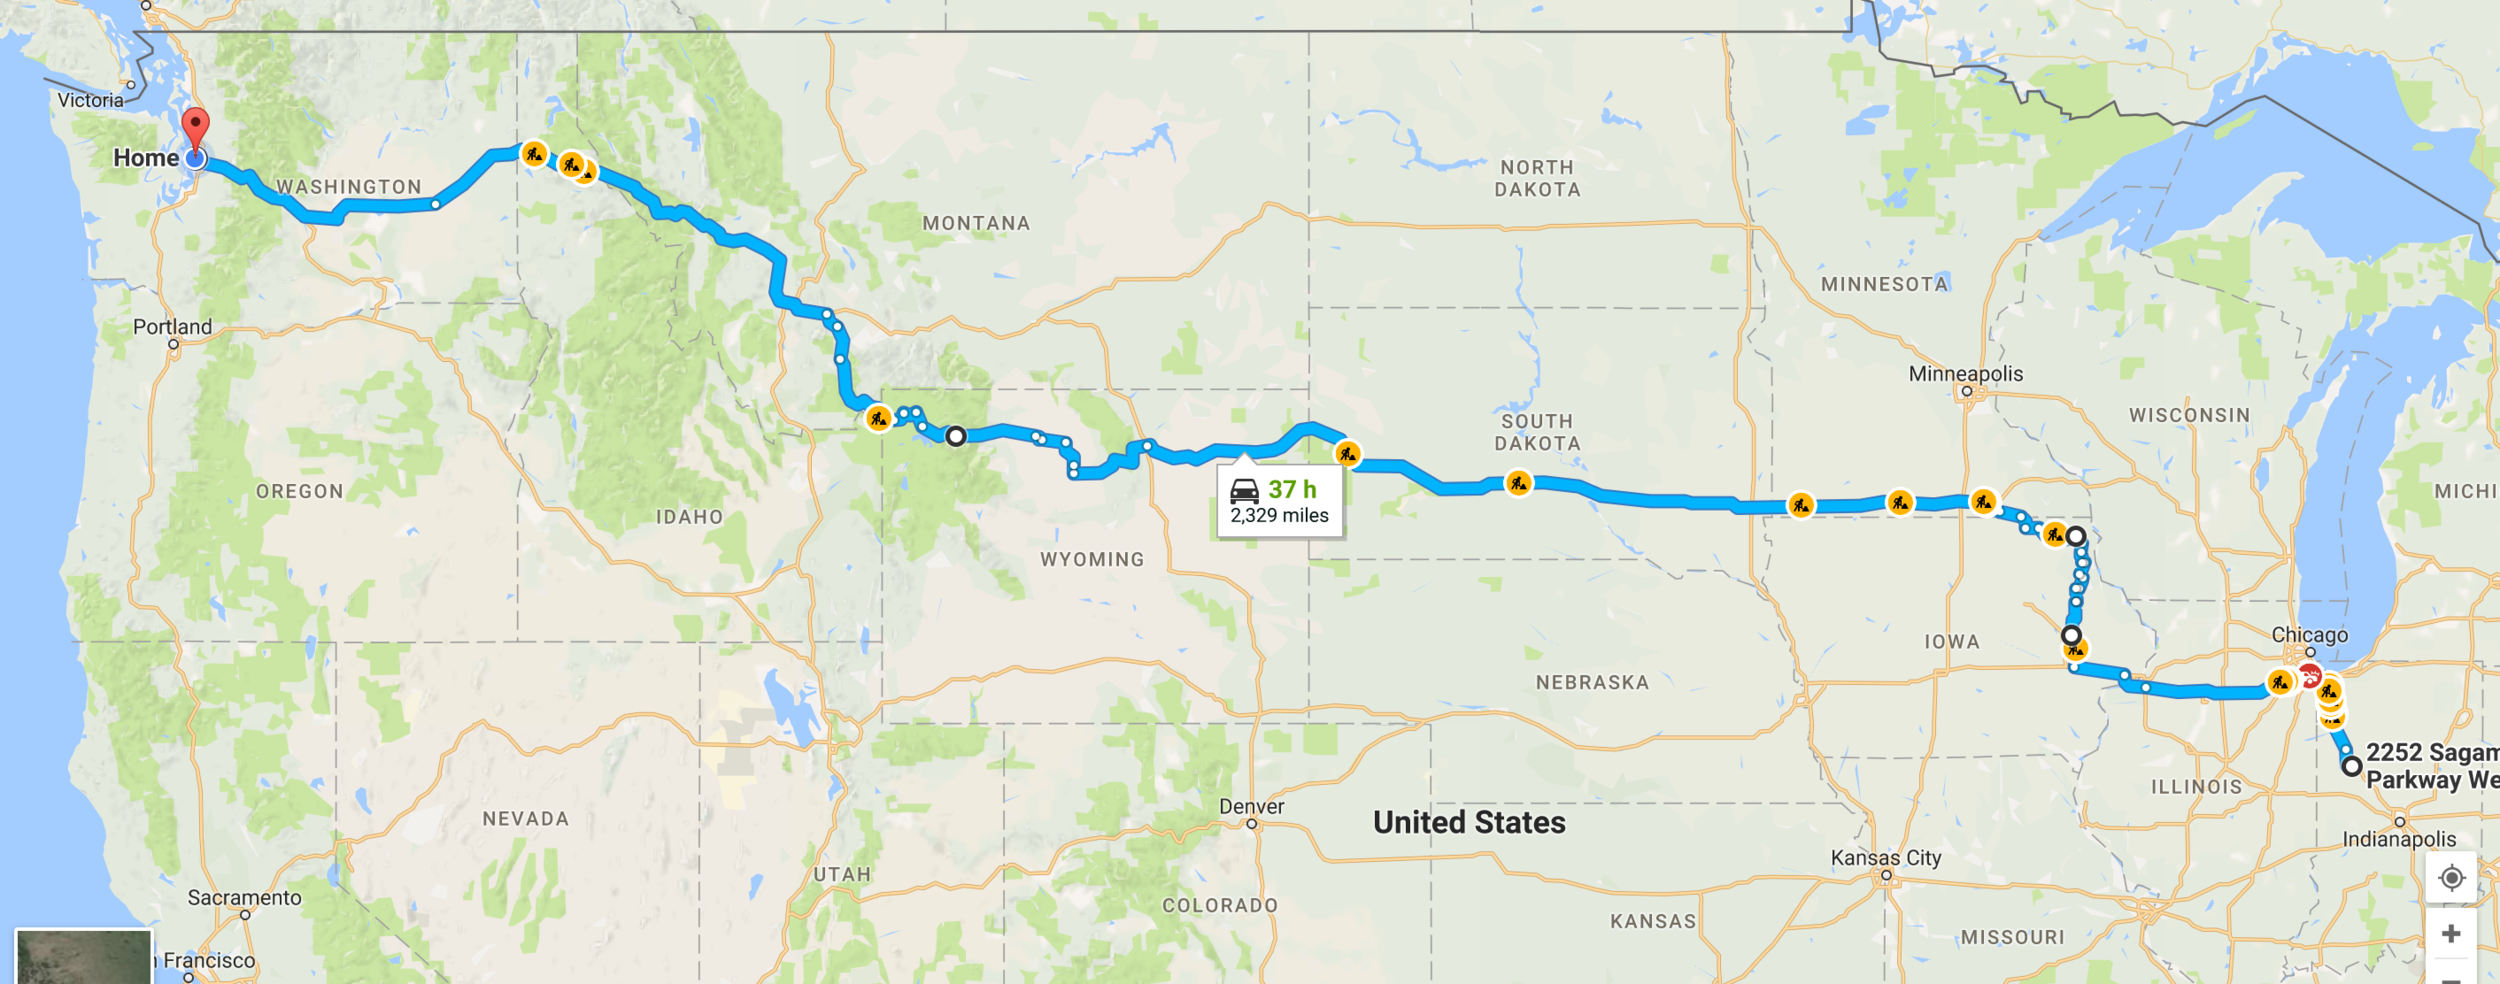 route from Indiana to Seattle, WA